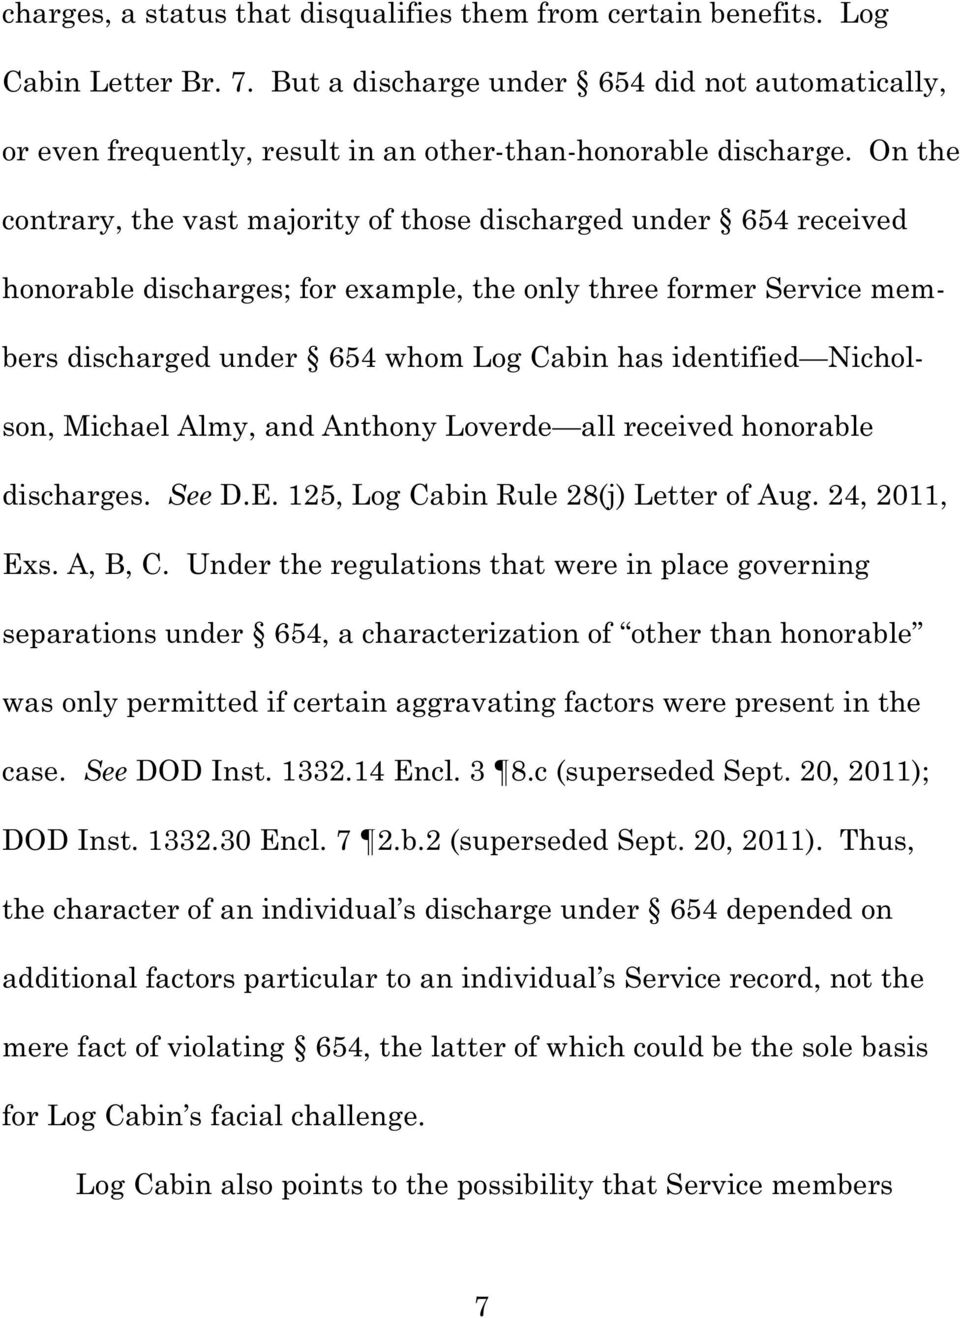 On the contrary, the vast majority of those discharged under 654 received honorable discharges; for example, the only three former Service members discharged under 654 whom Log Cabin has identified